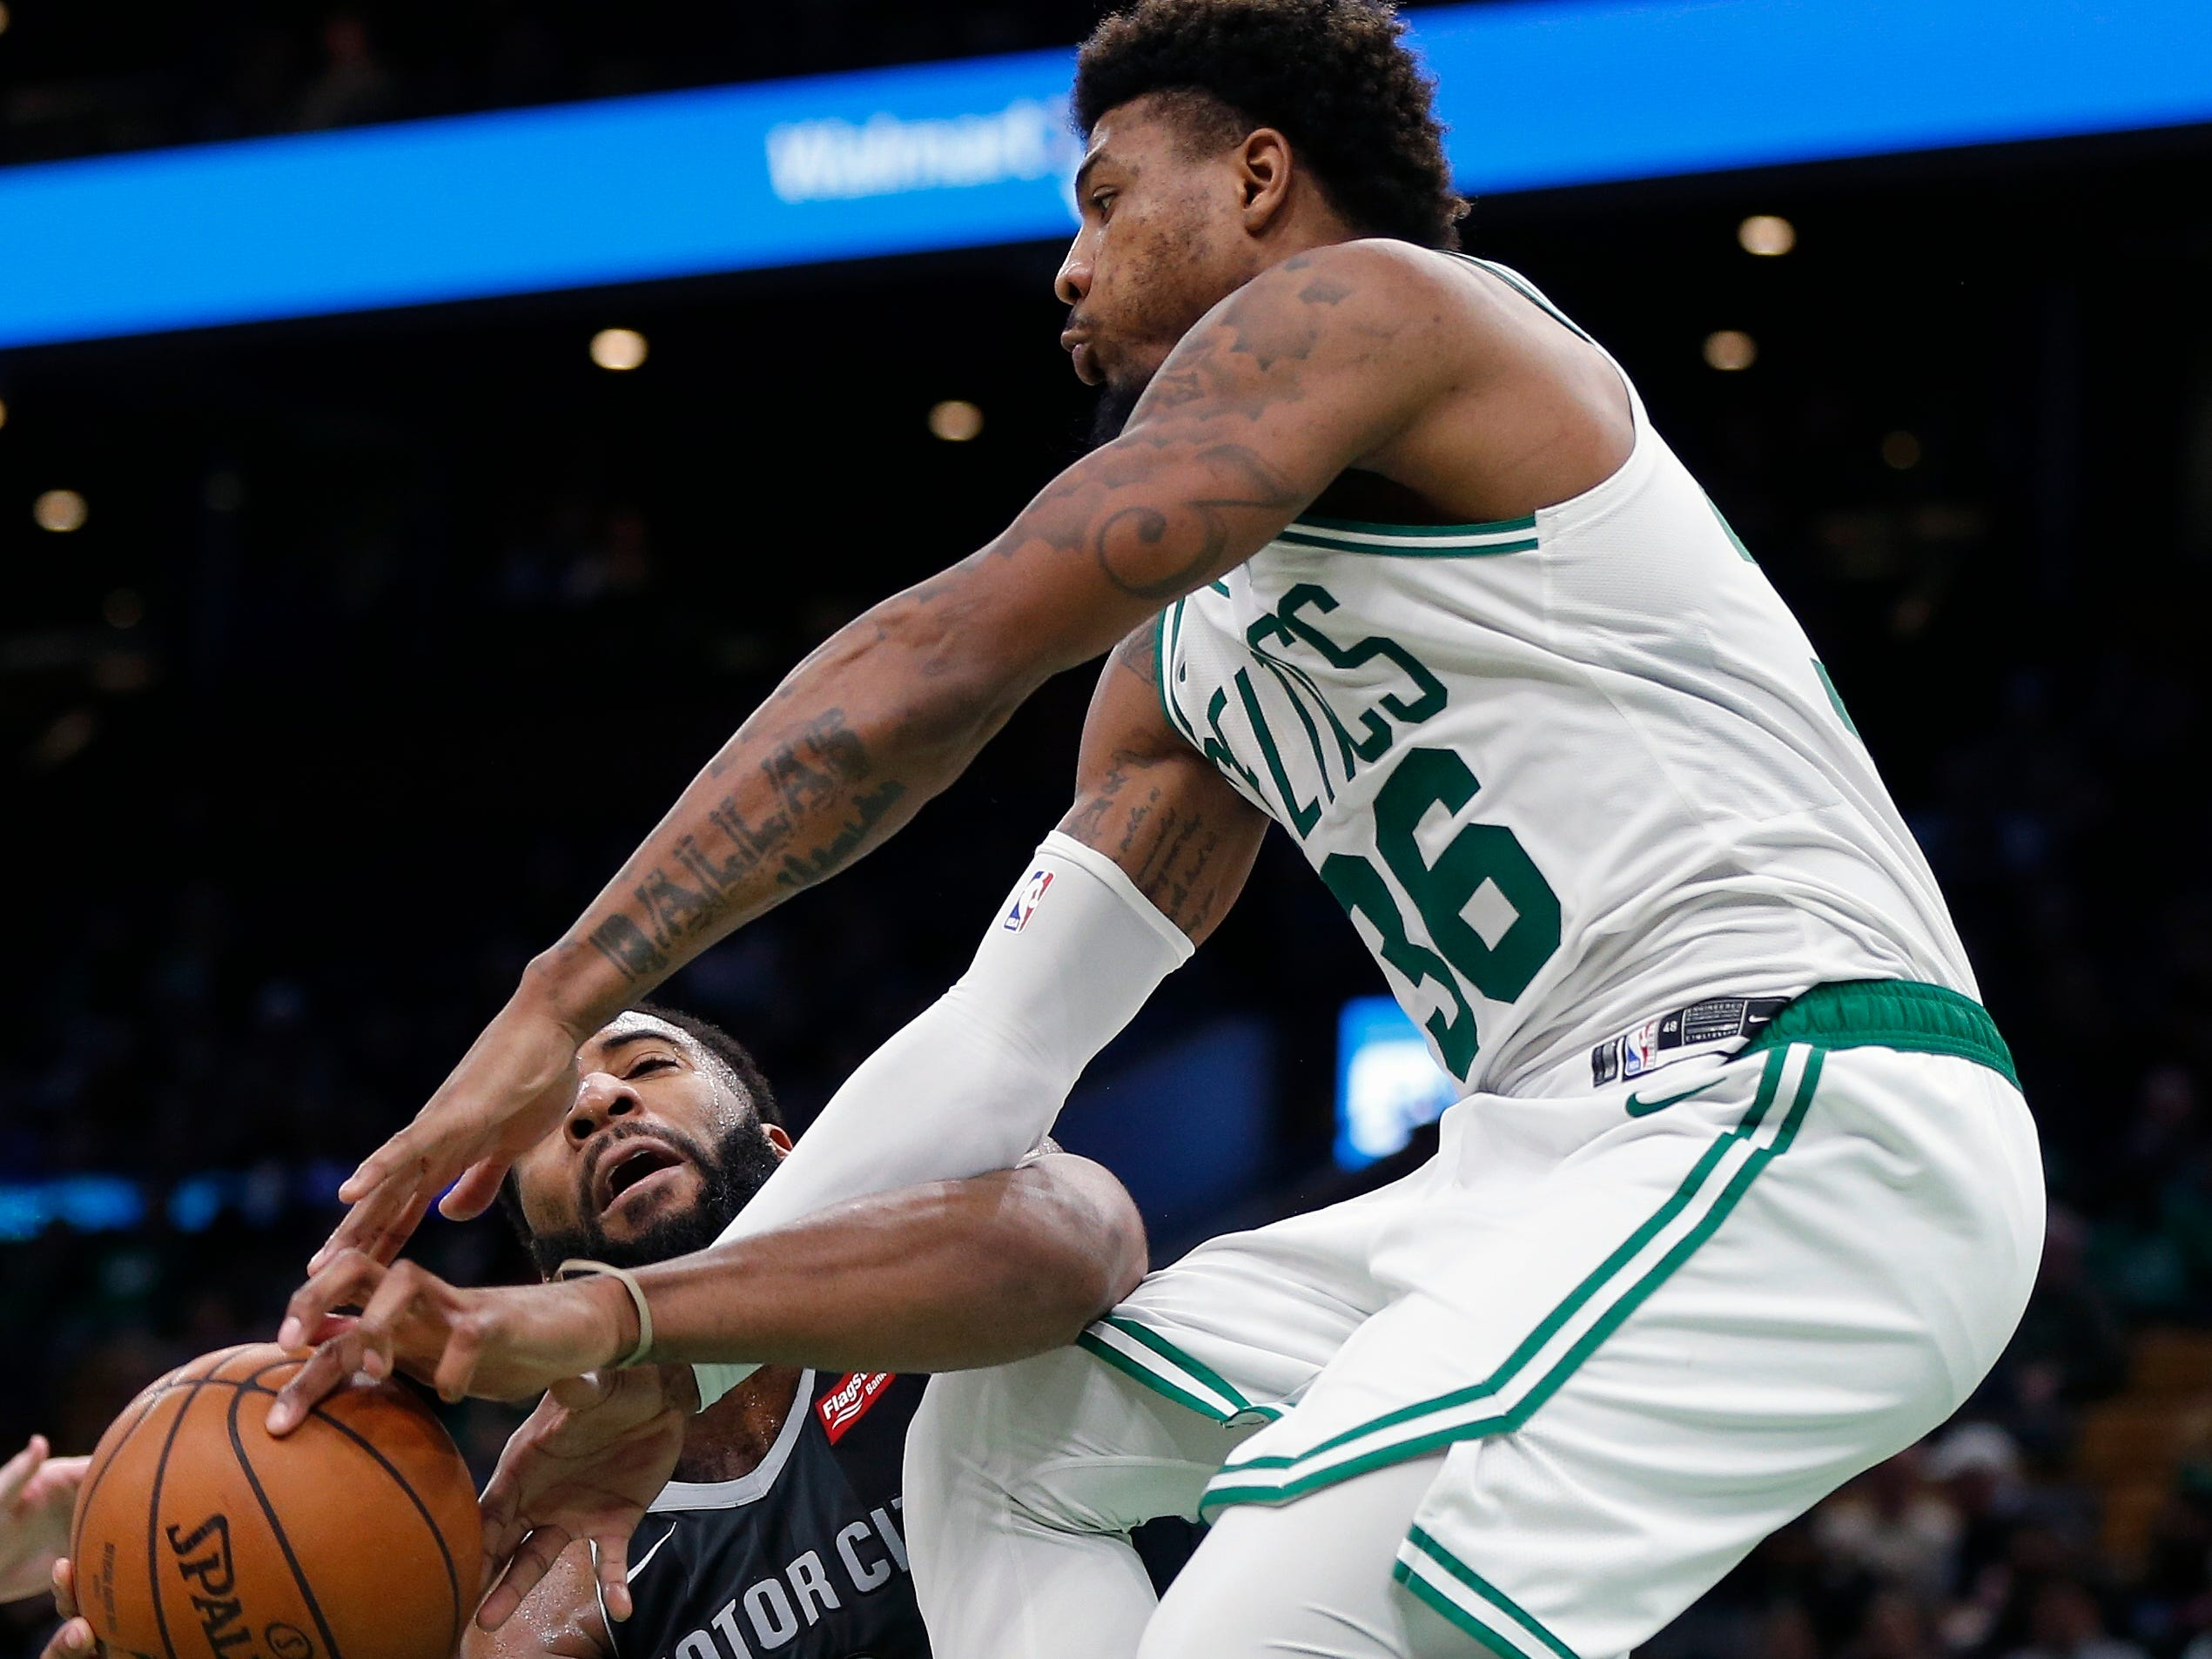 Boston Celtics' Marcus Smart (36) and Detroit Pistons' Andre Drummond (0) battle for a rebound during the second half.